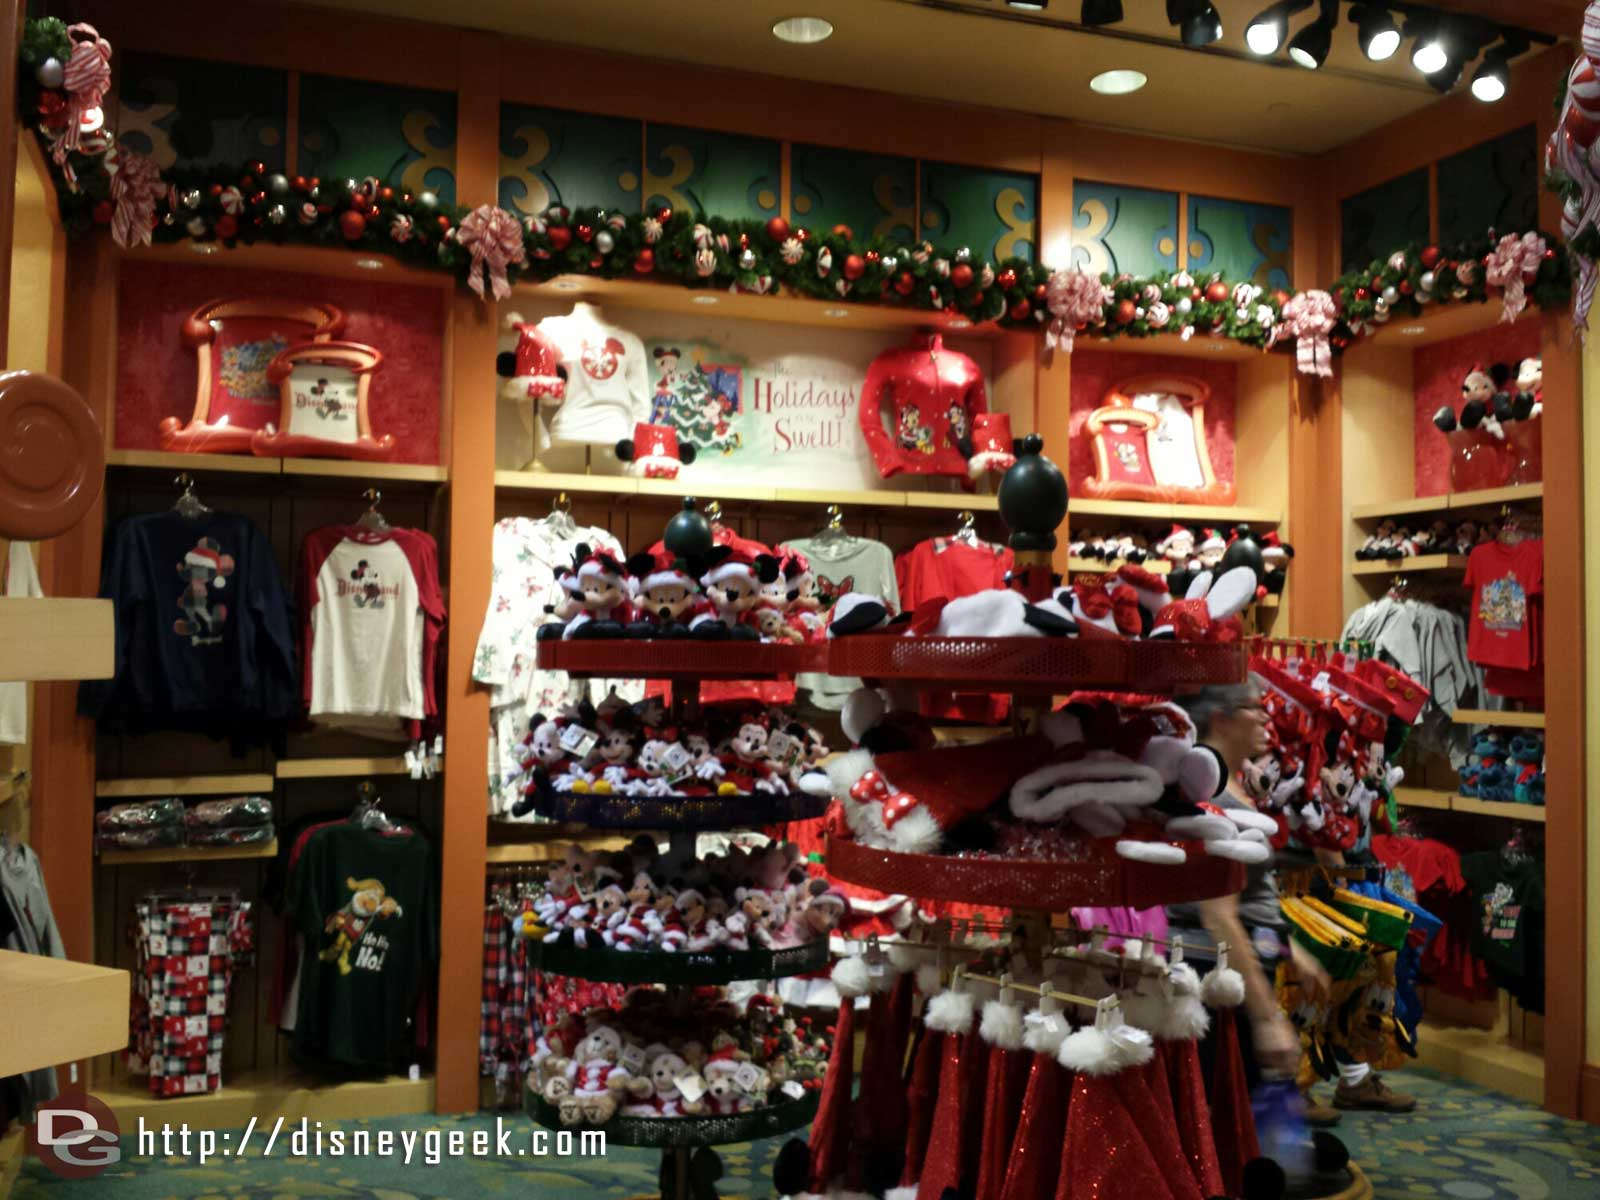 Inside World of Disney plenty of Christmas merchandise is available